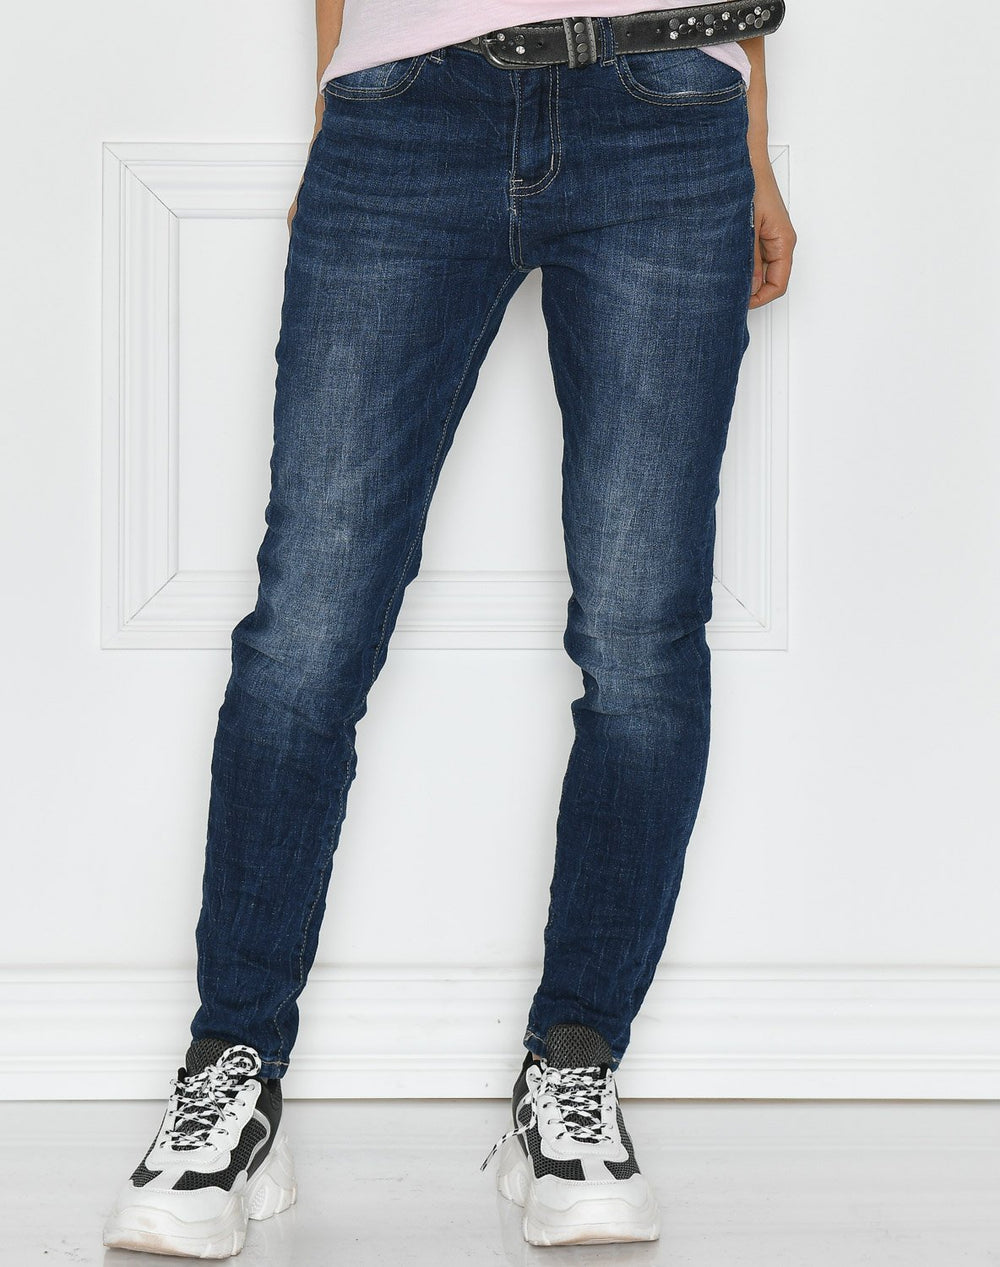 Prepair Inoa jeans blue - Online-Mode